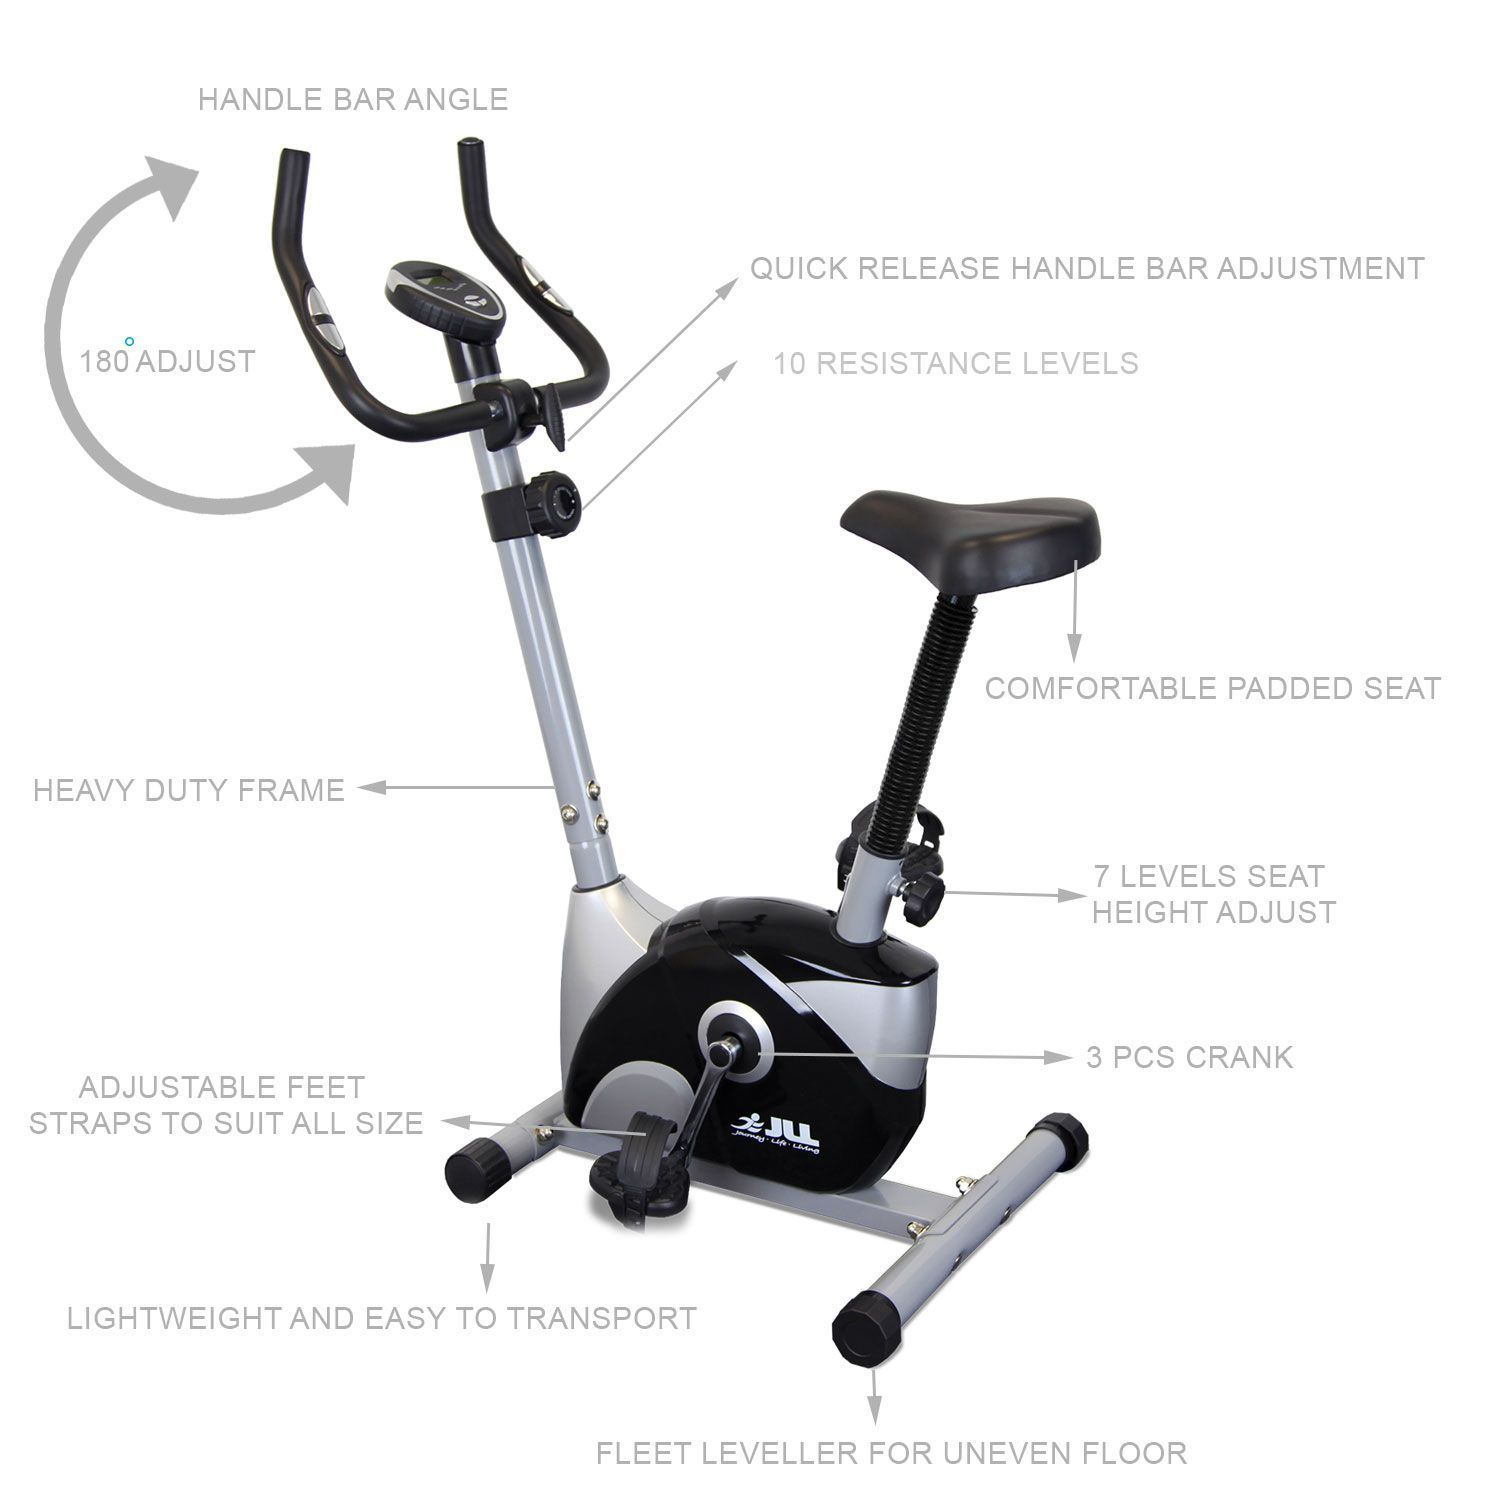 JF100 Home Exercise Bike The JF100 perfect beginners exercise bike ...